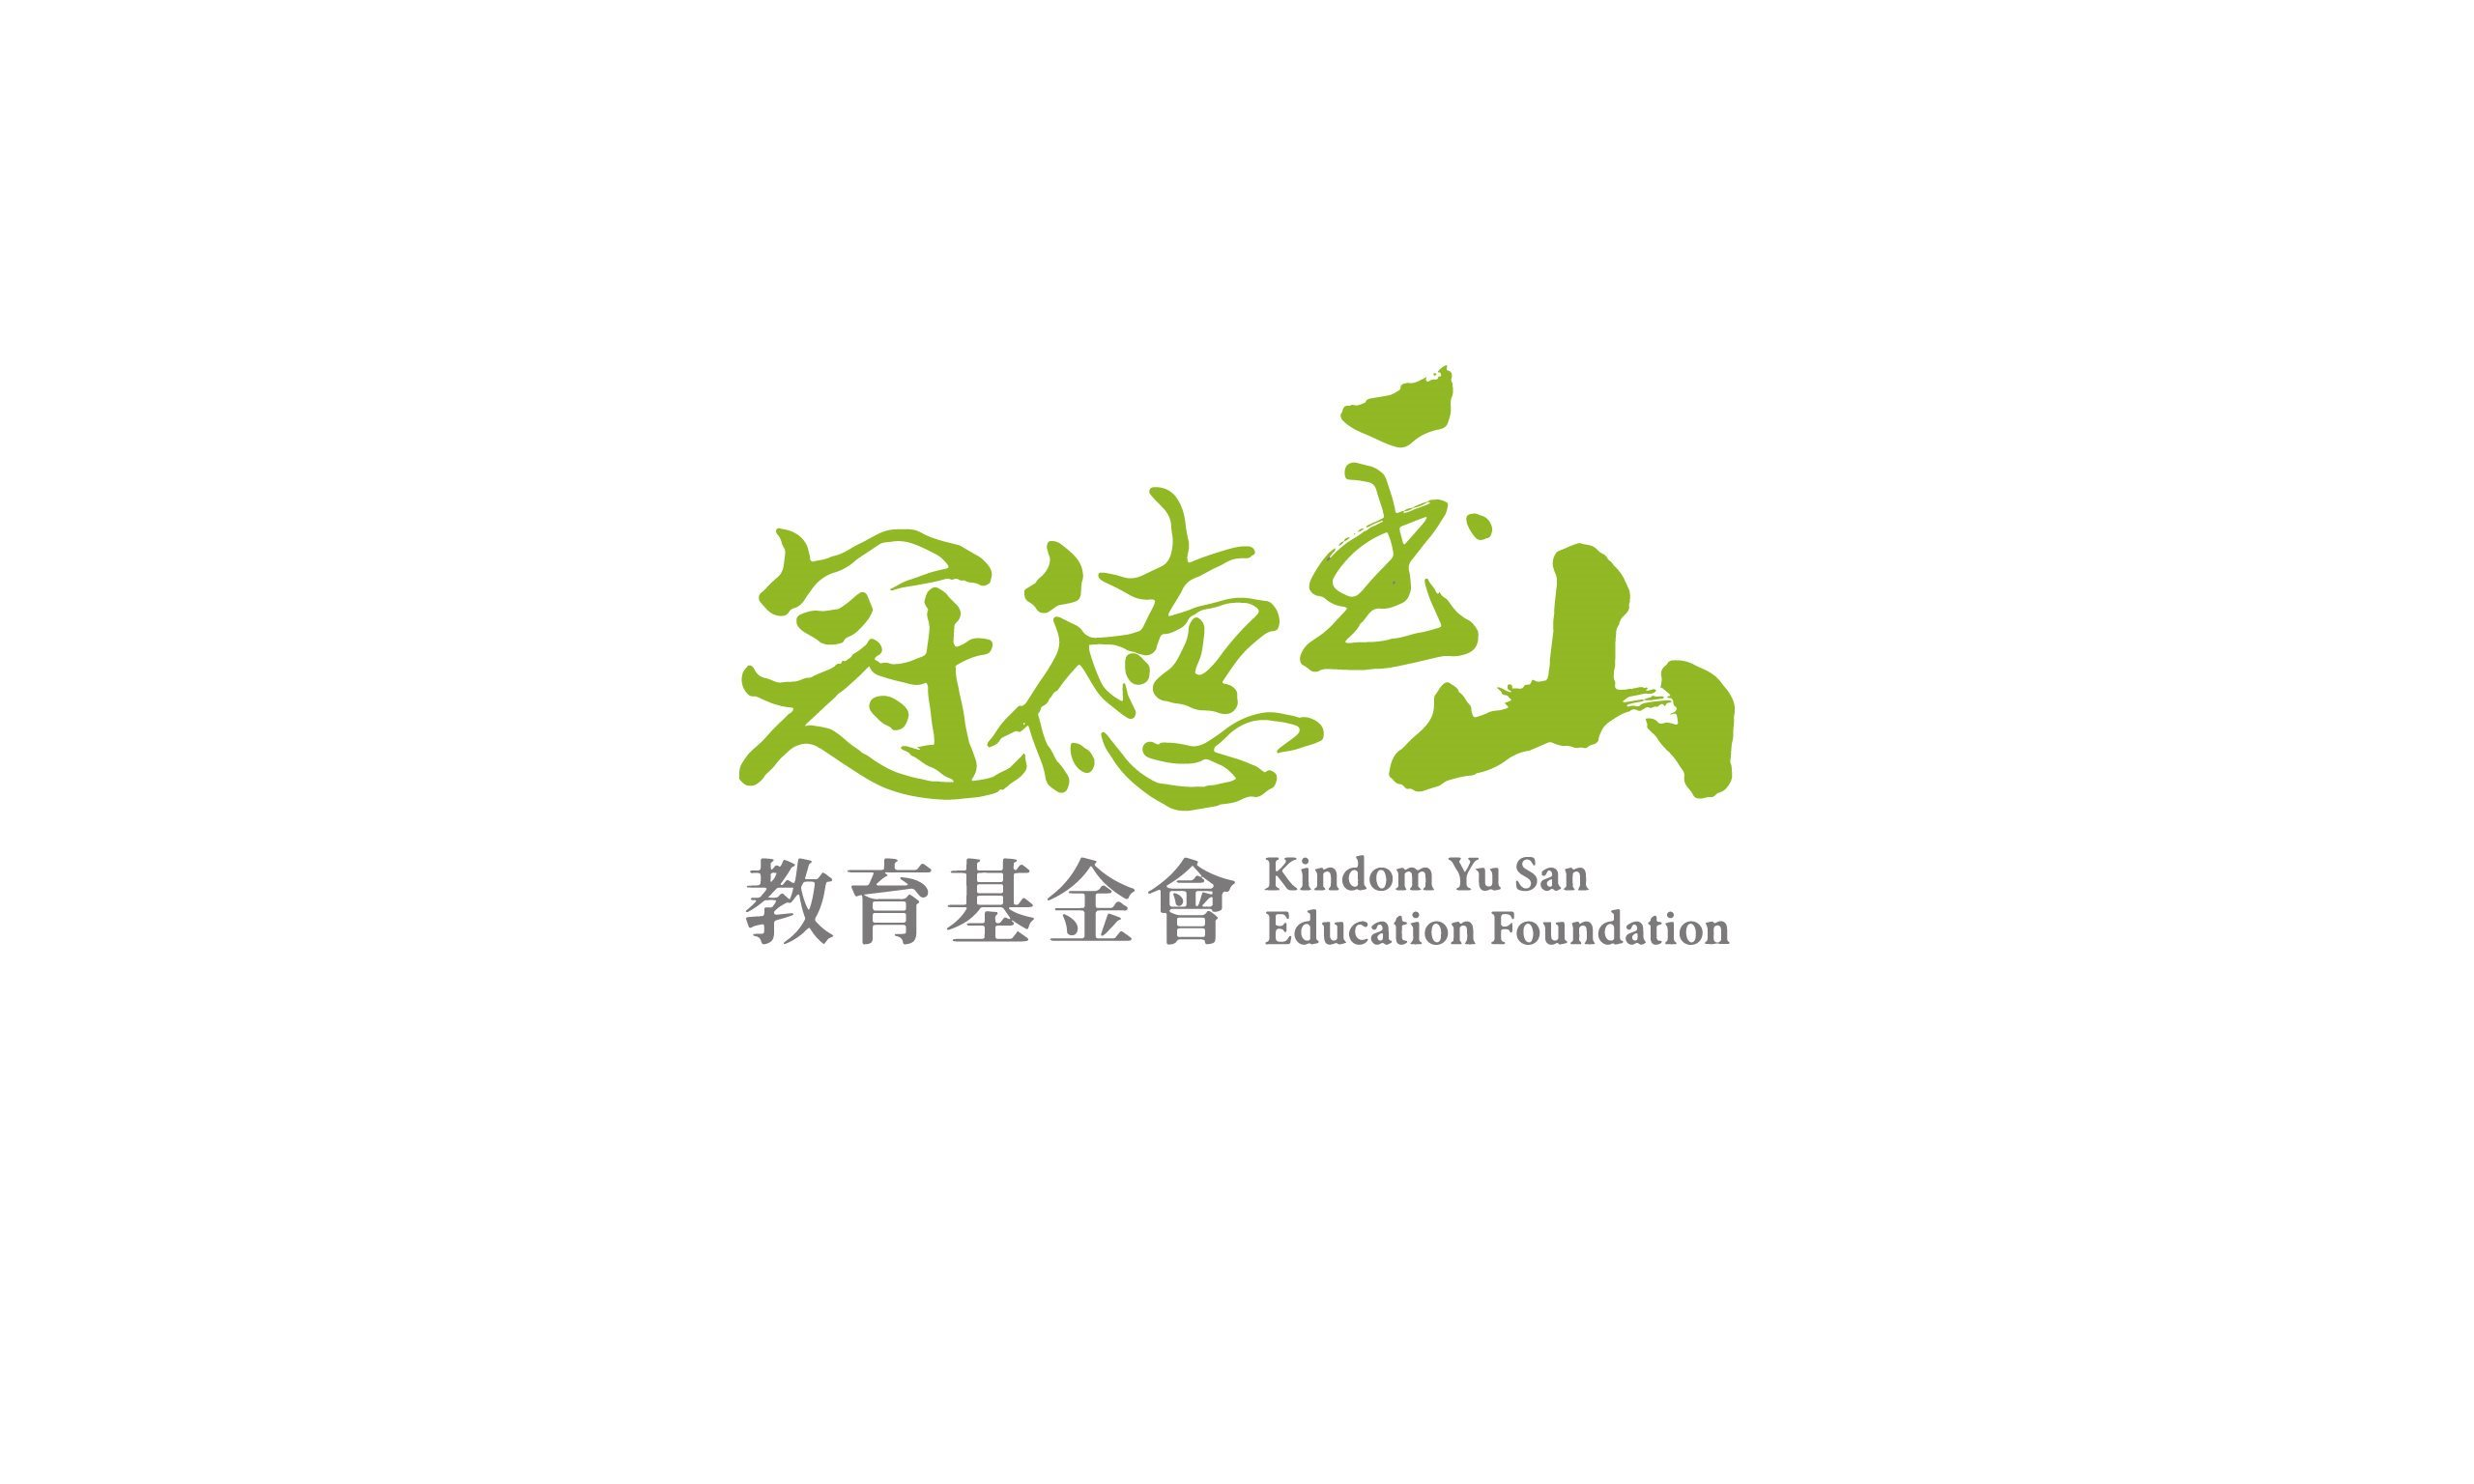 Kindom Yu San Education Foundation